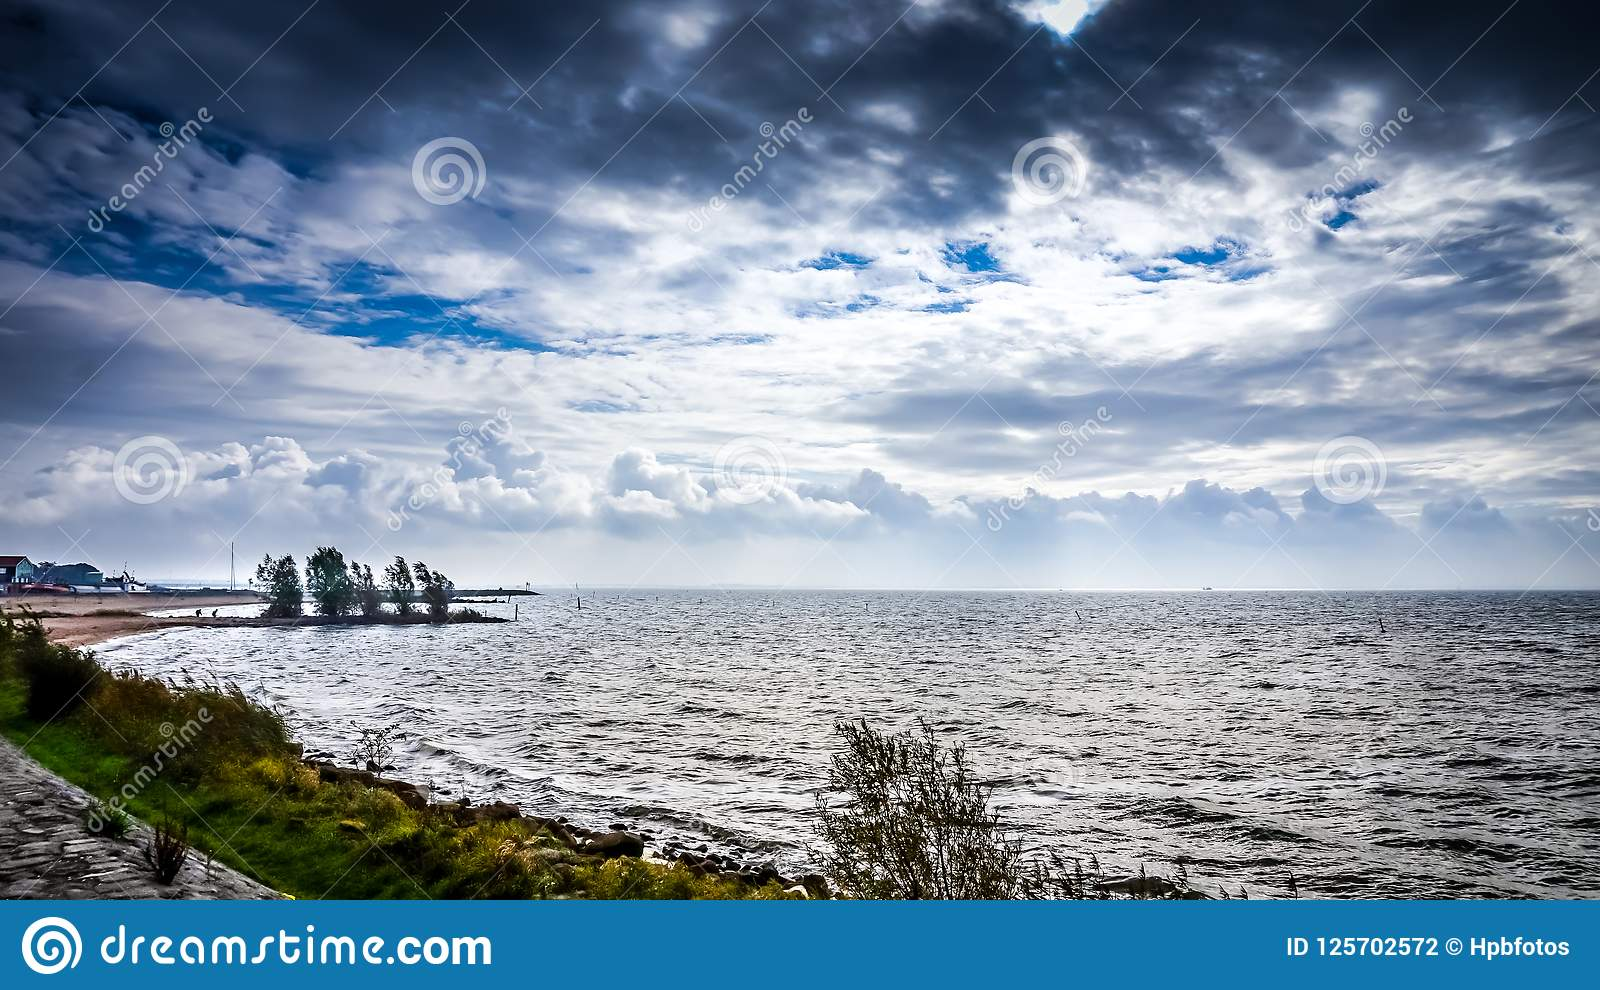 Stormy weather and dark clouds over het IJsselmeer in the Netherlands